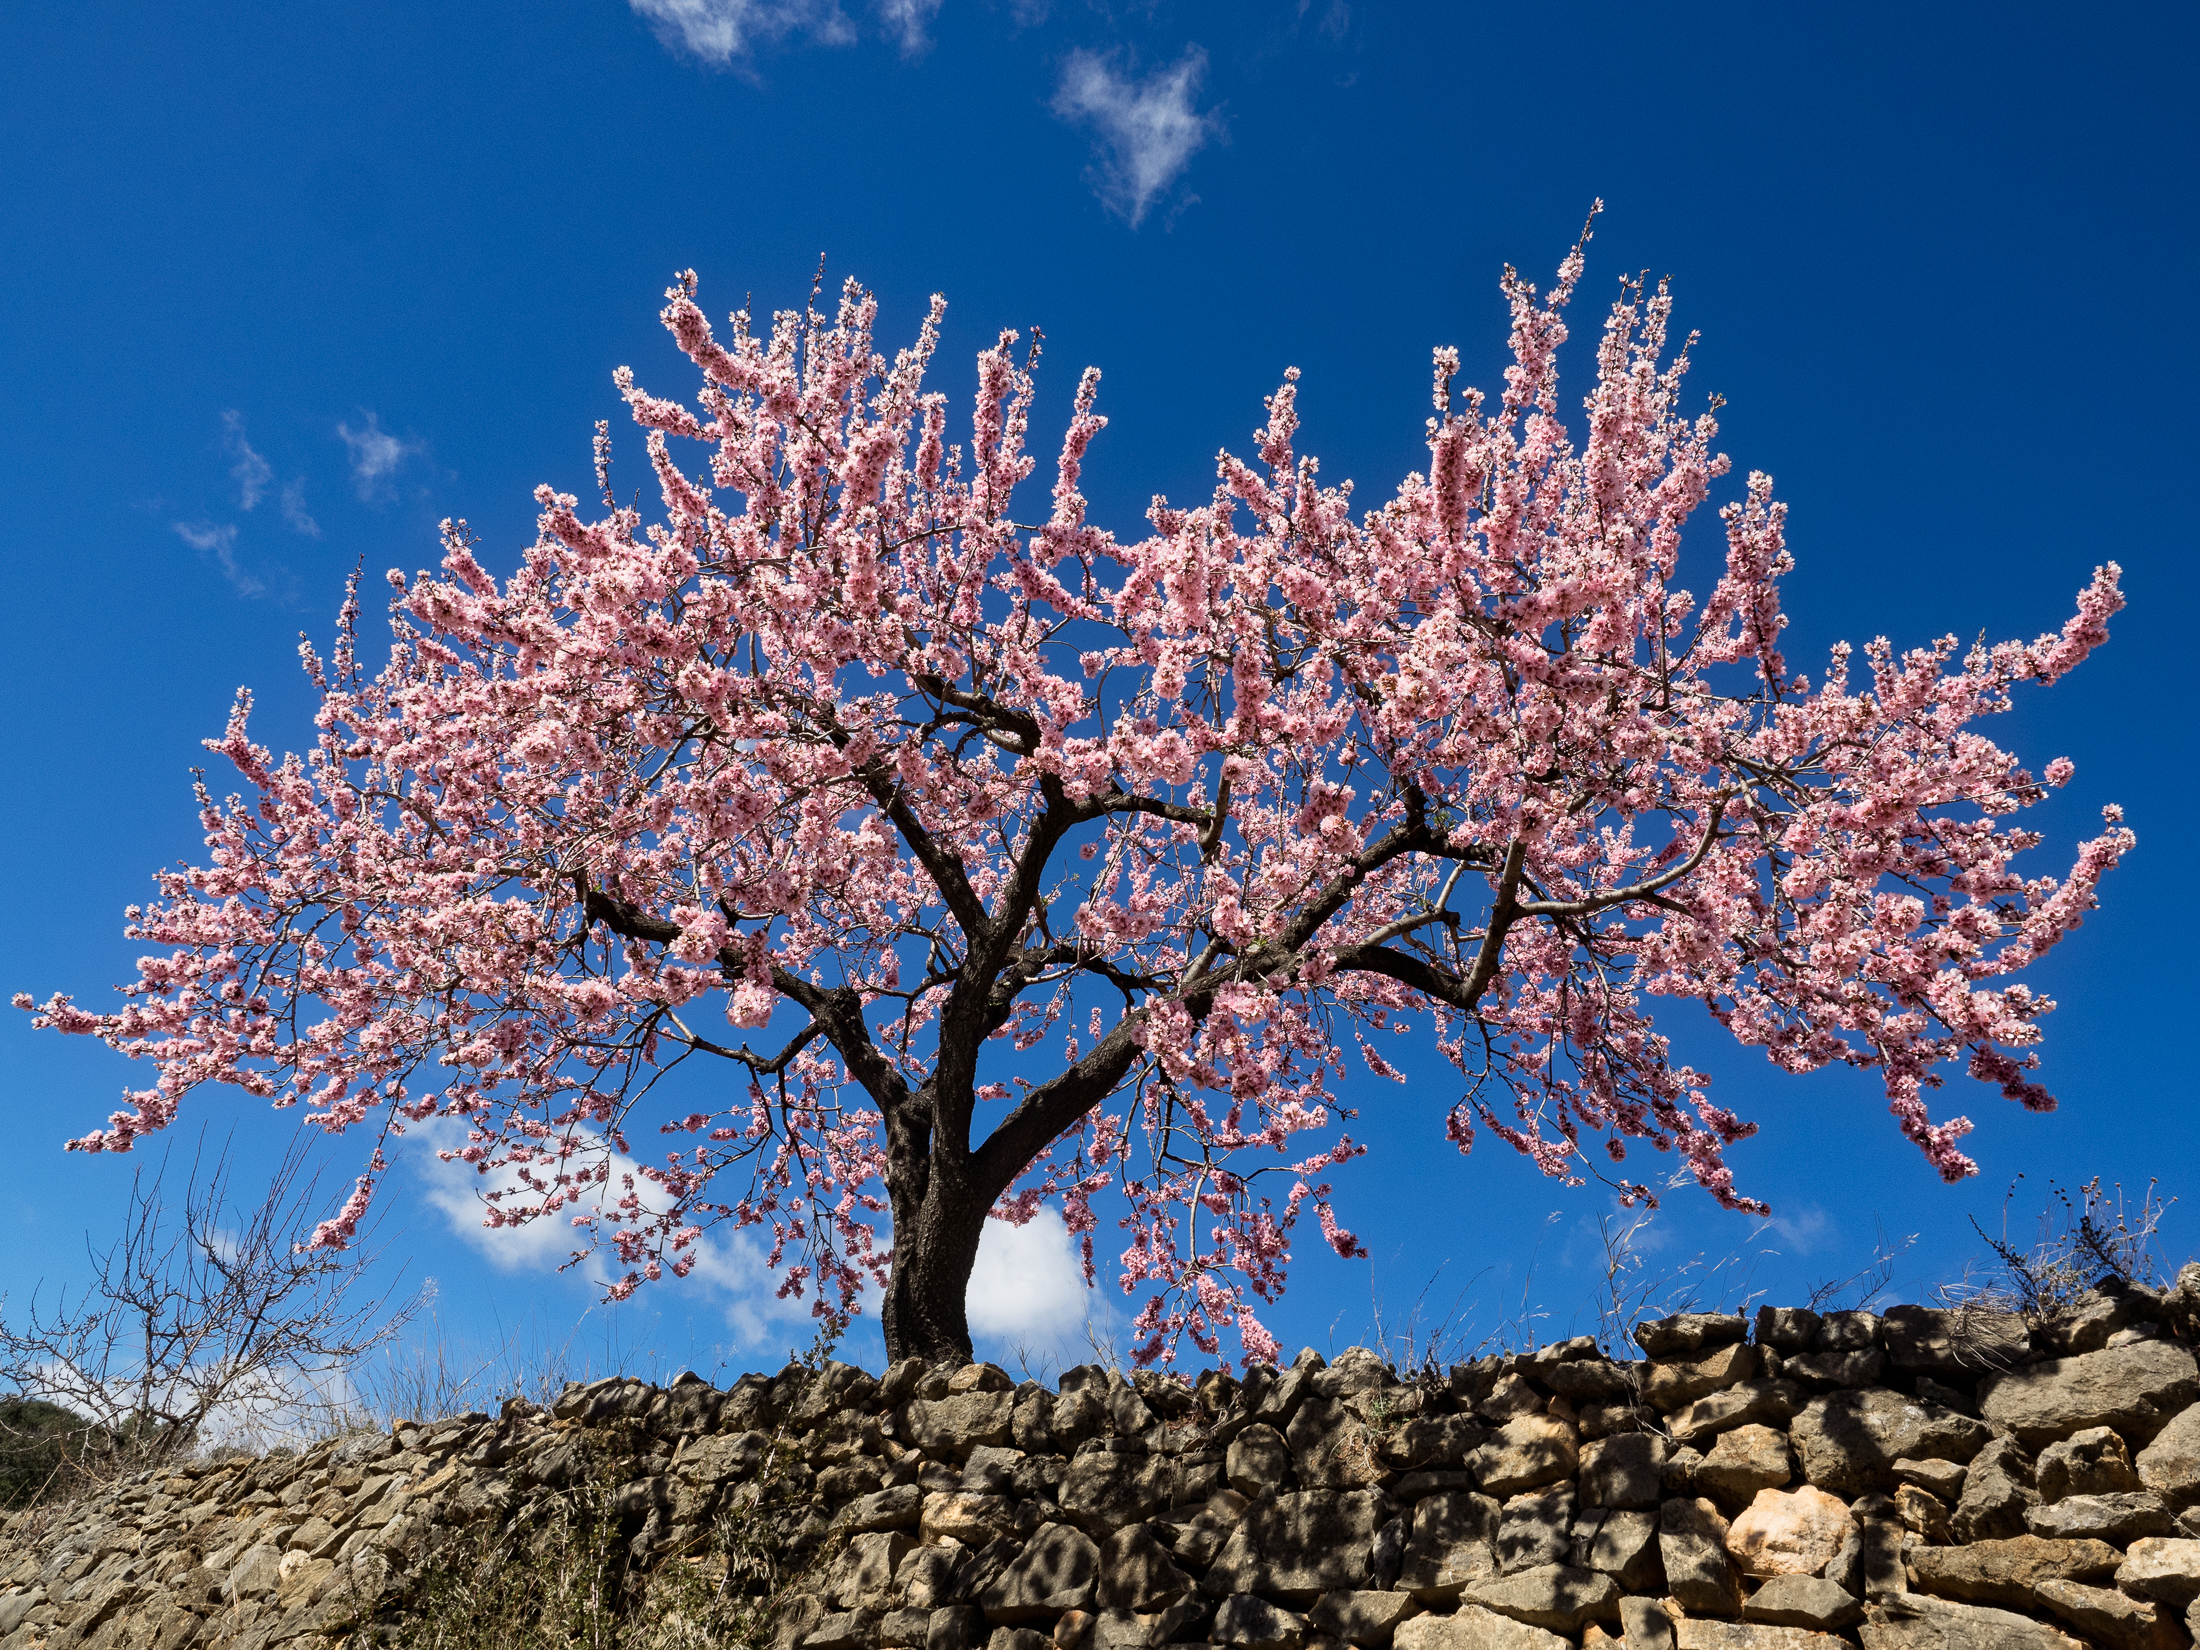 I absolutely adore the almond trees, but did not realise that I am allergic to them